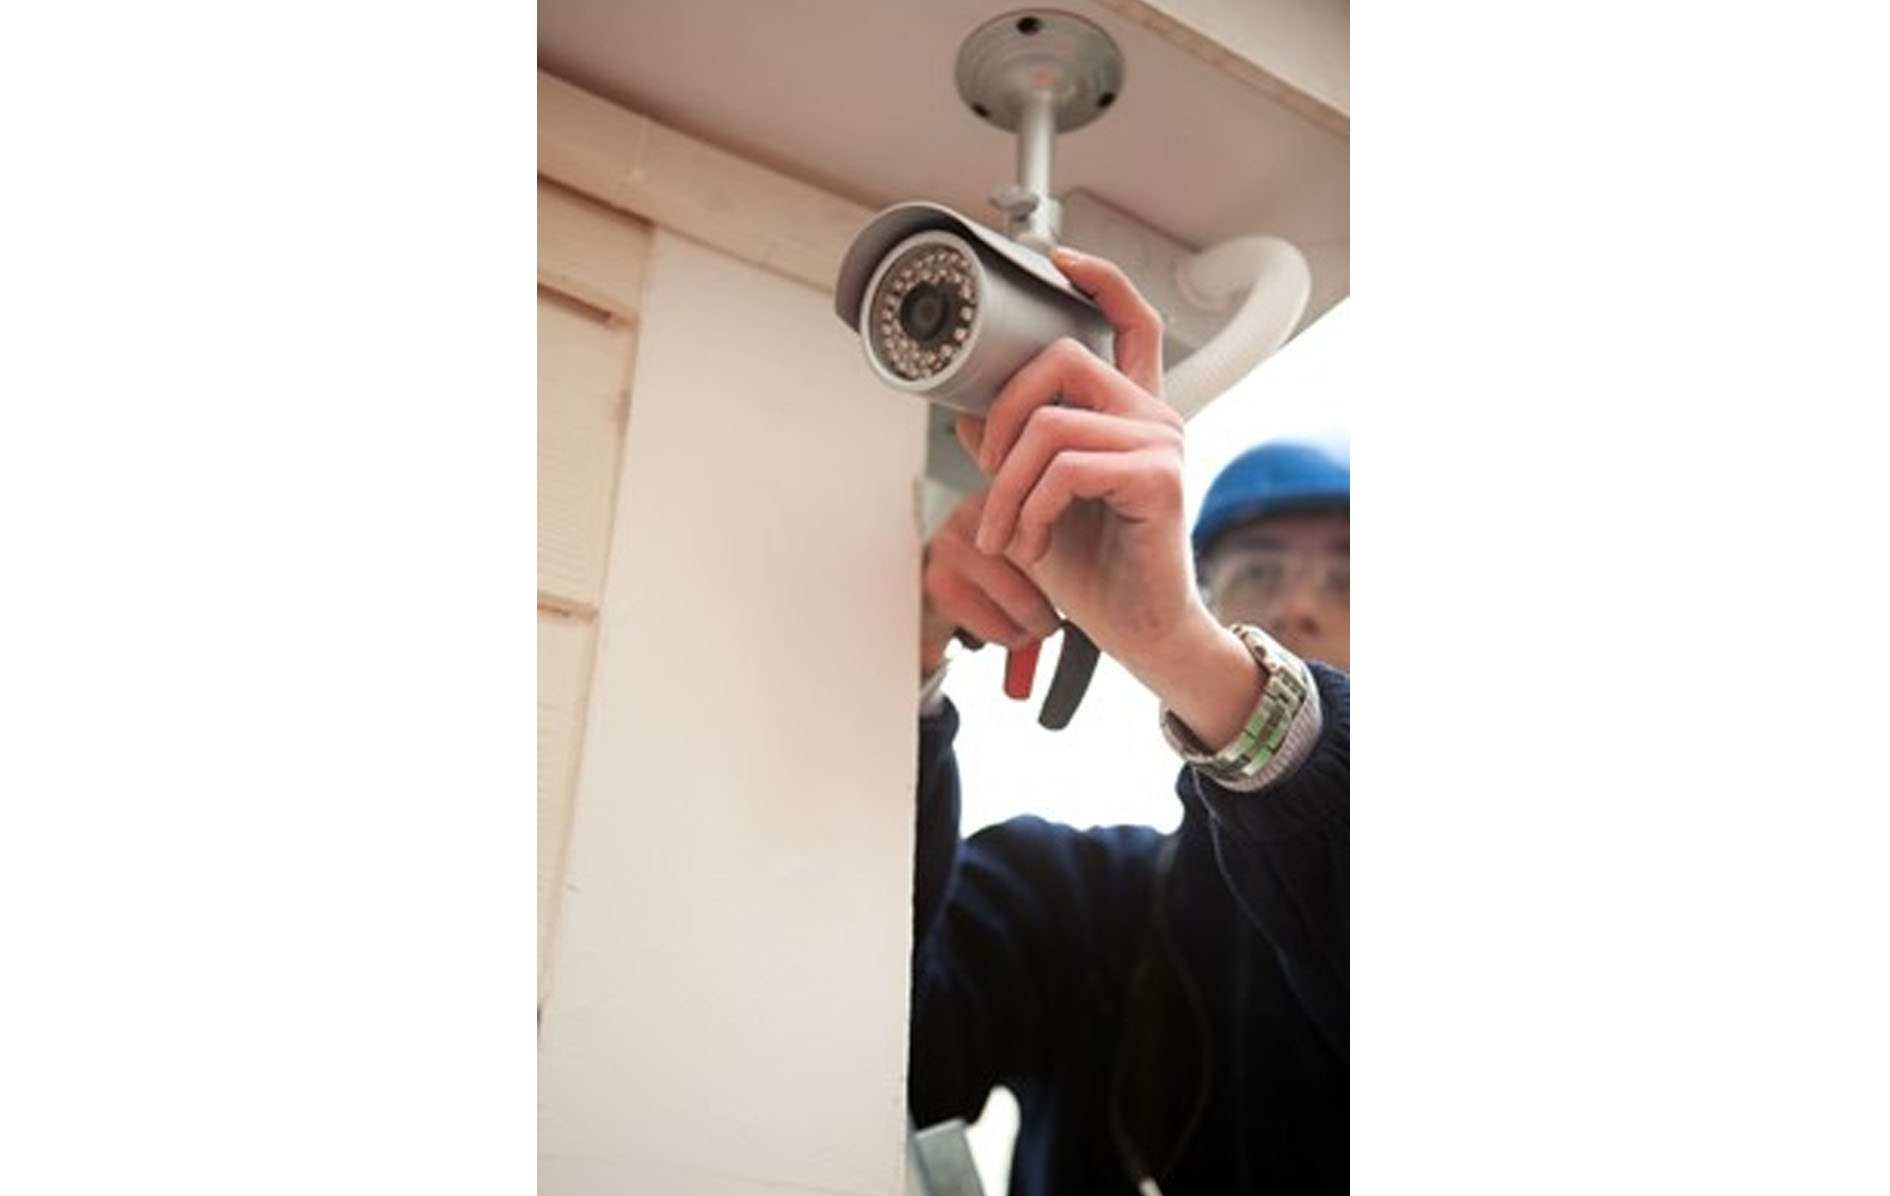 Setting up bullet security camera